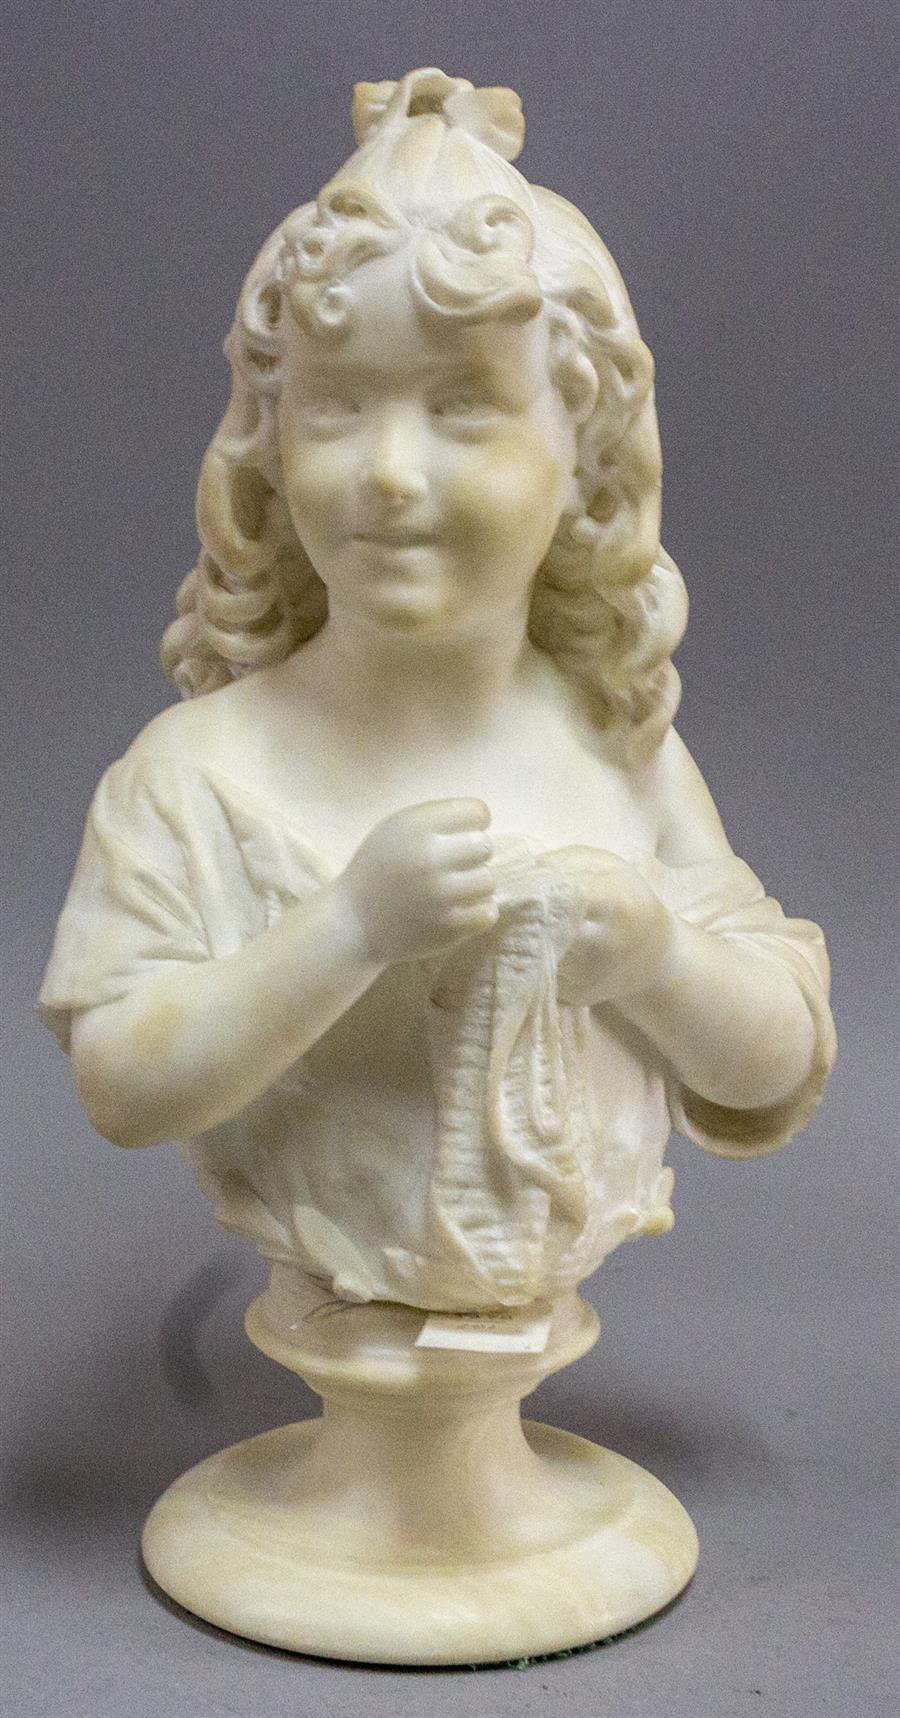 Marble statue of a young girl sewing, with a marble base